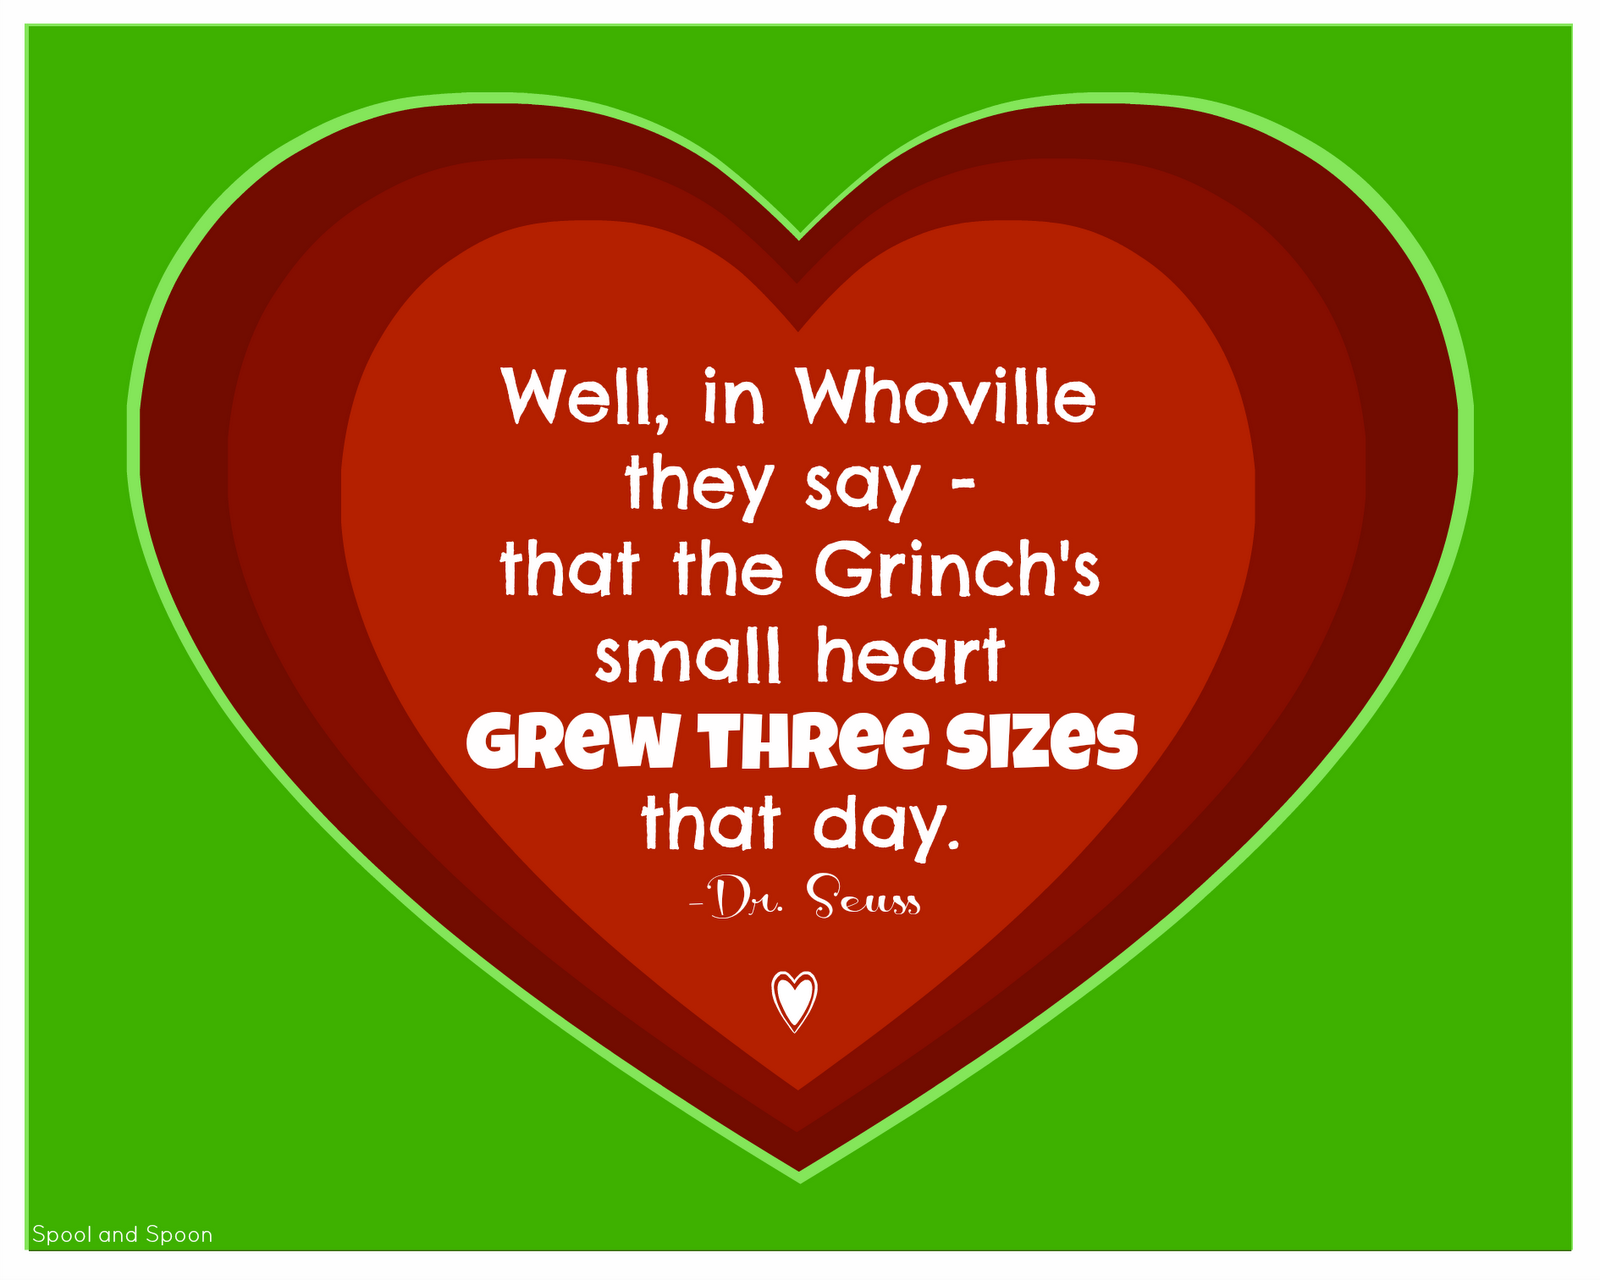 Quotes About Sharing Your Heart Quotesgram: Christmas Quotes From The Heart. QuotesGram